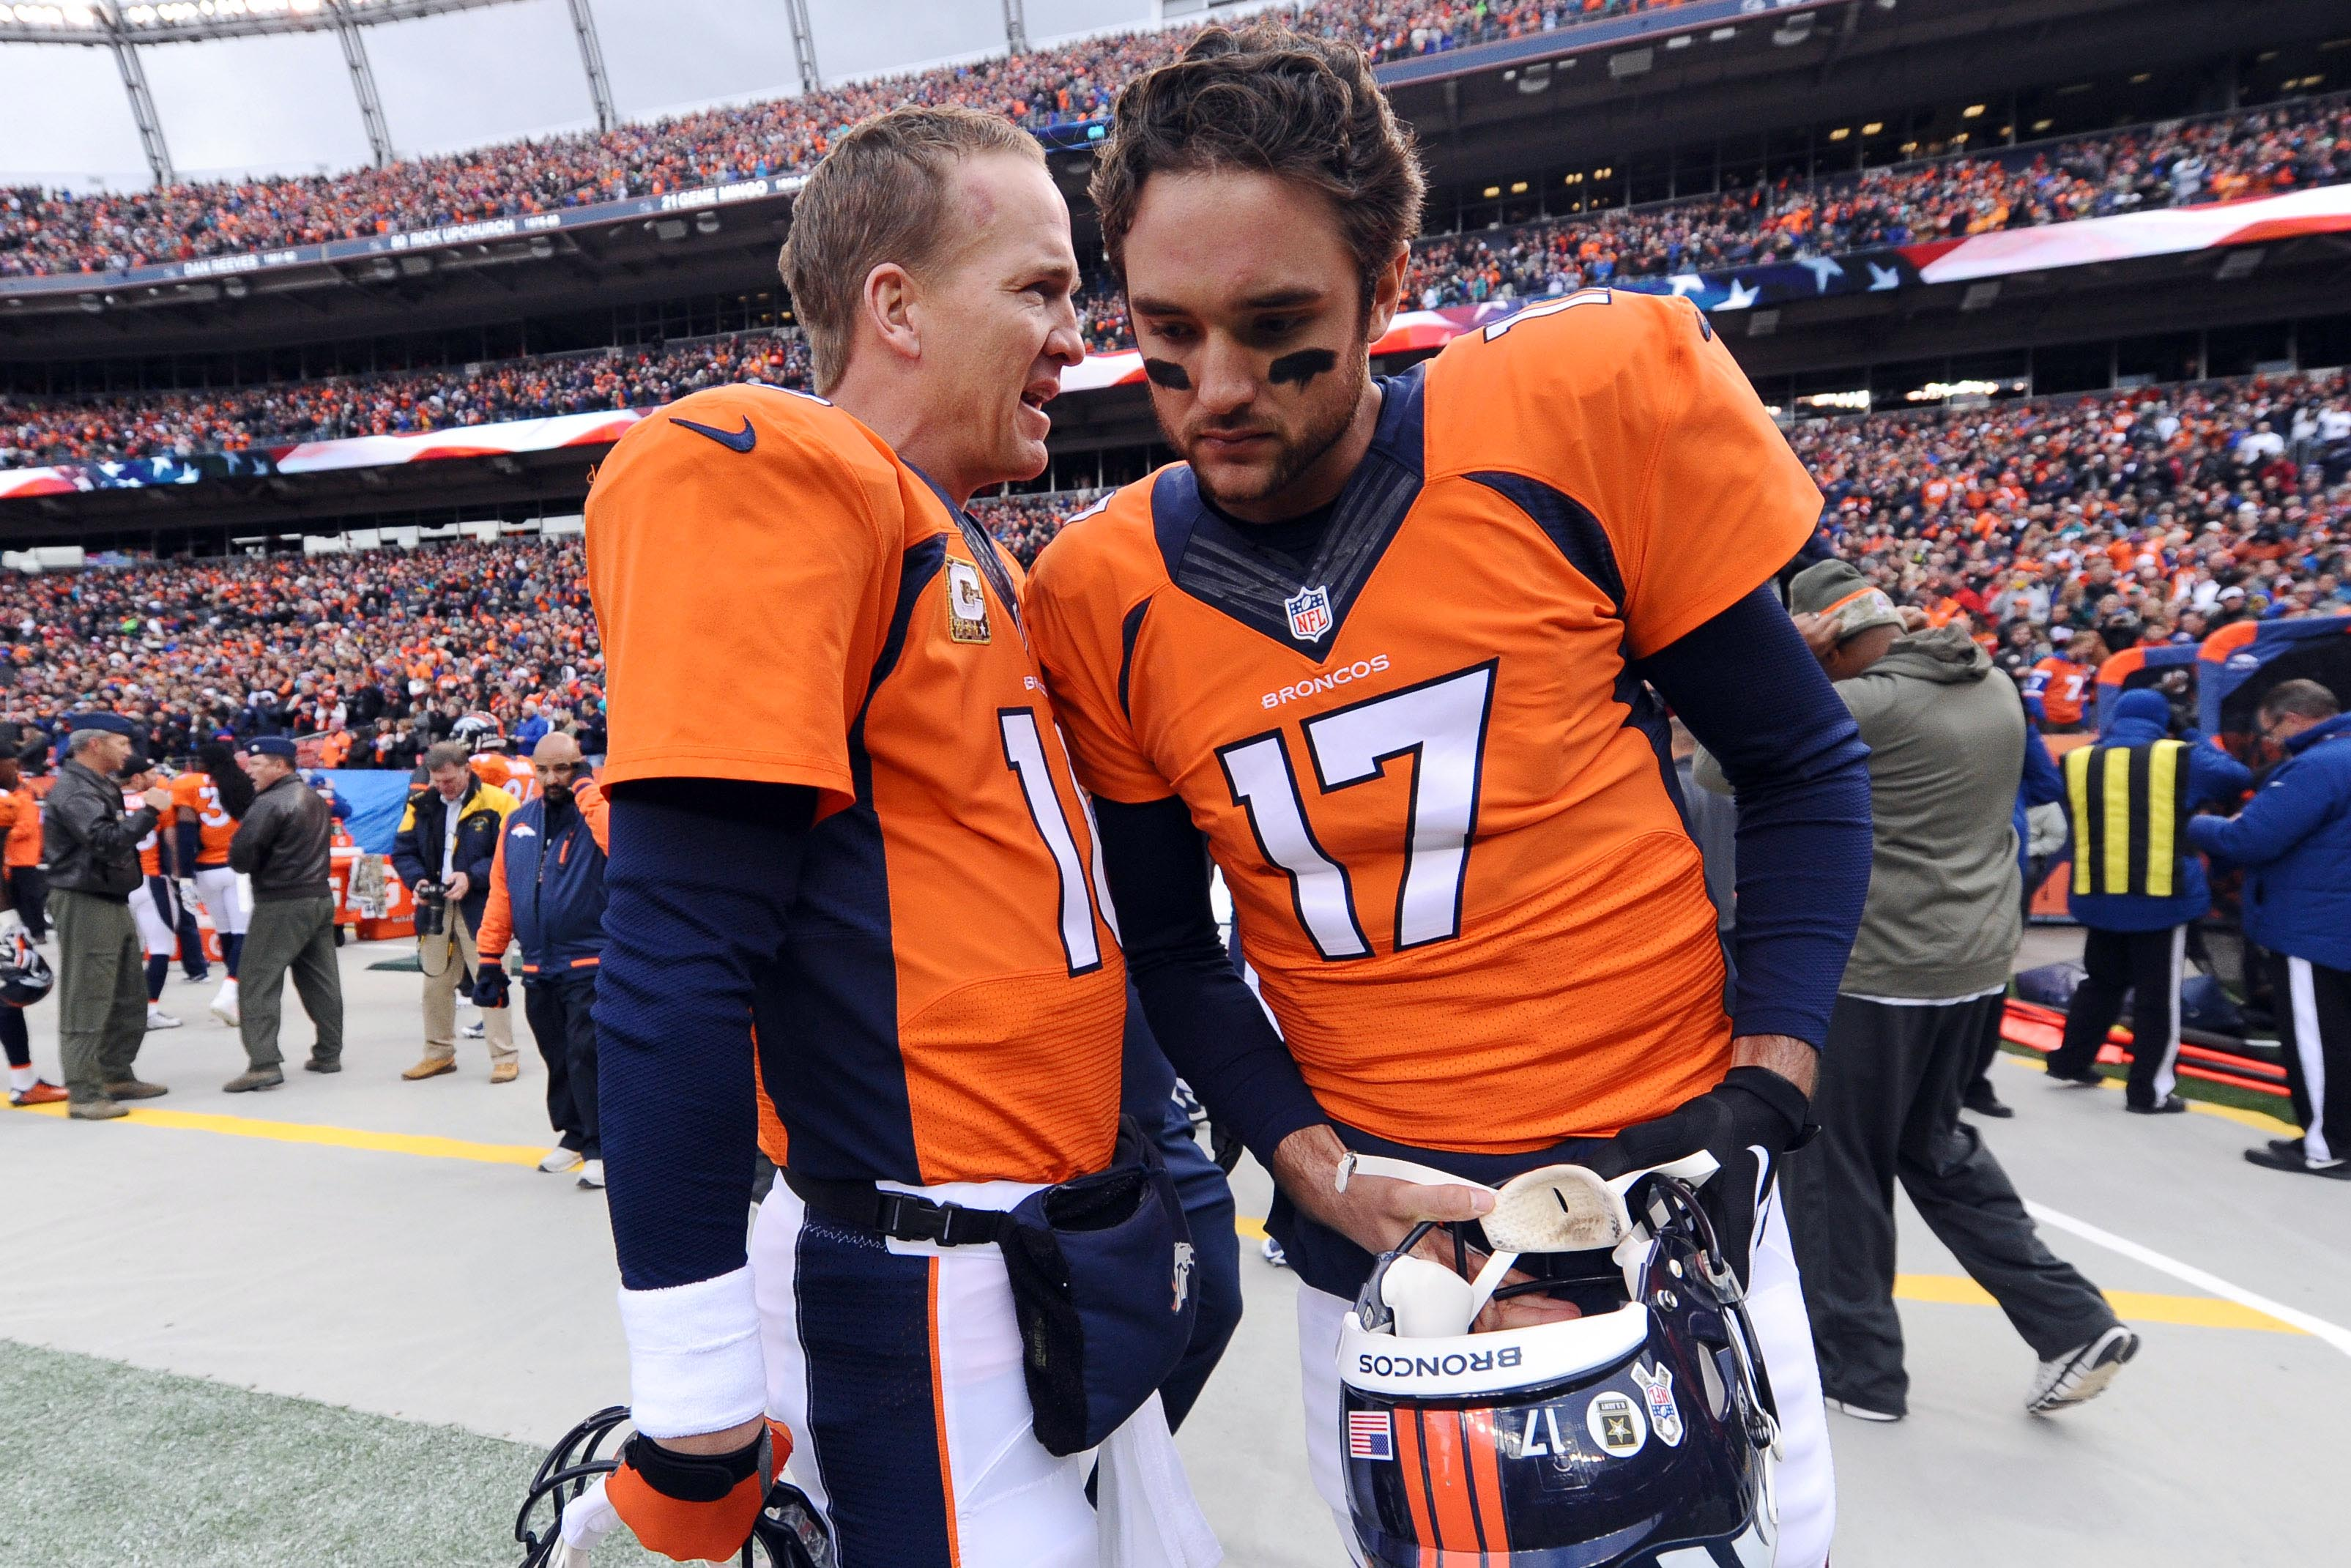 Peyton Manning, left, and Brock Osweiler